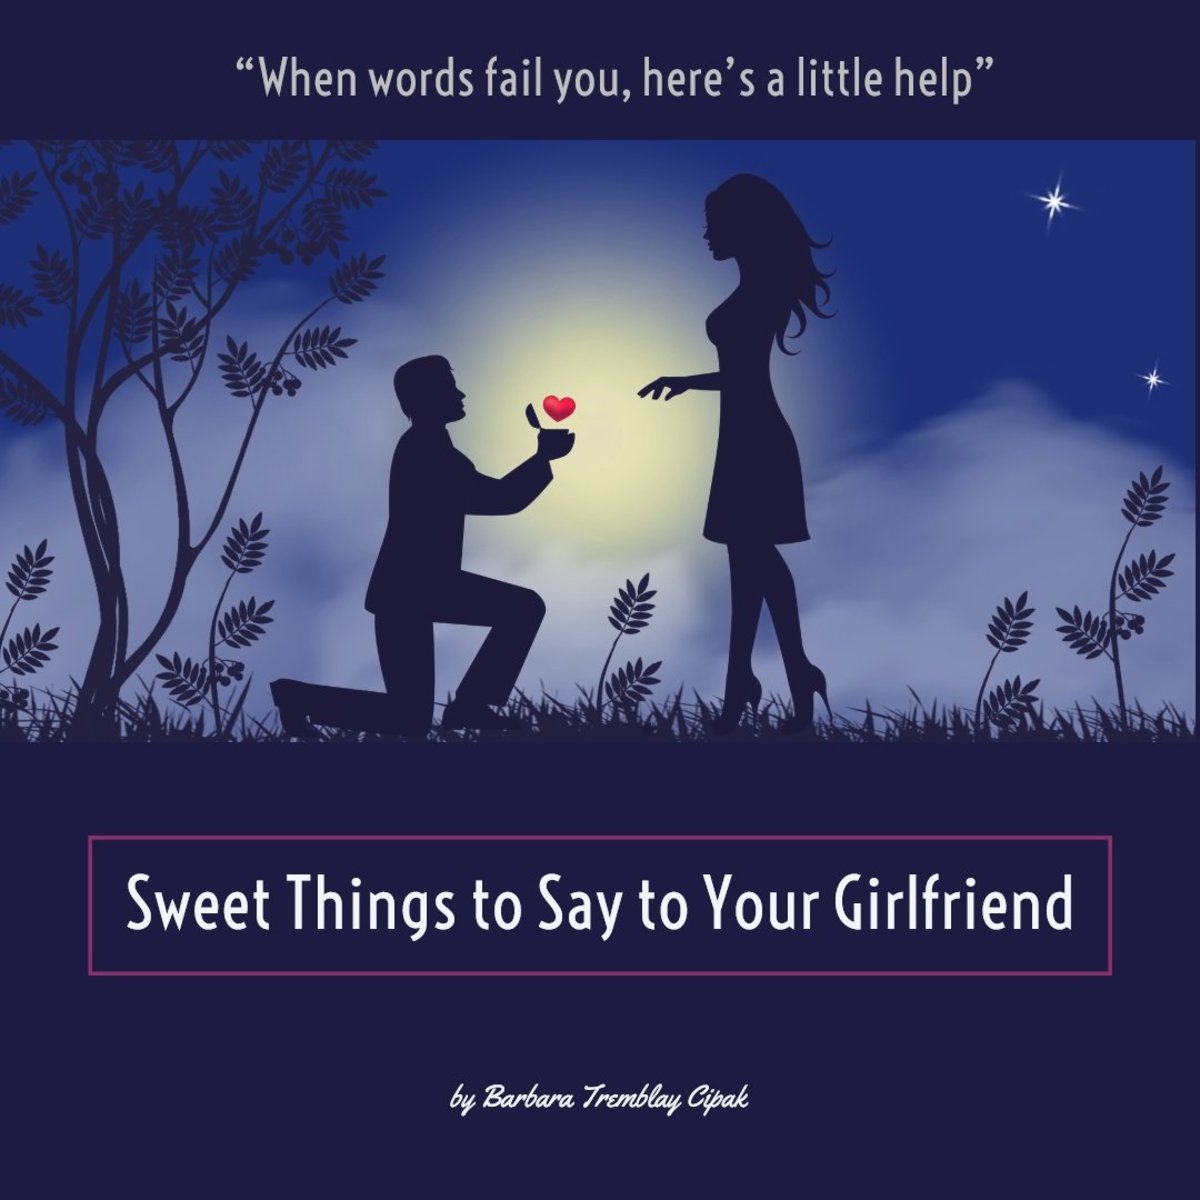 Sweet Things to Say to Your Girlfriend, Original sayings you can write in card, send via text or speak out loud